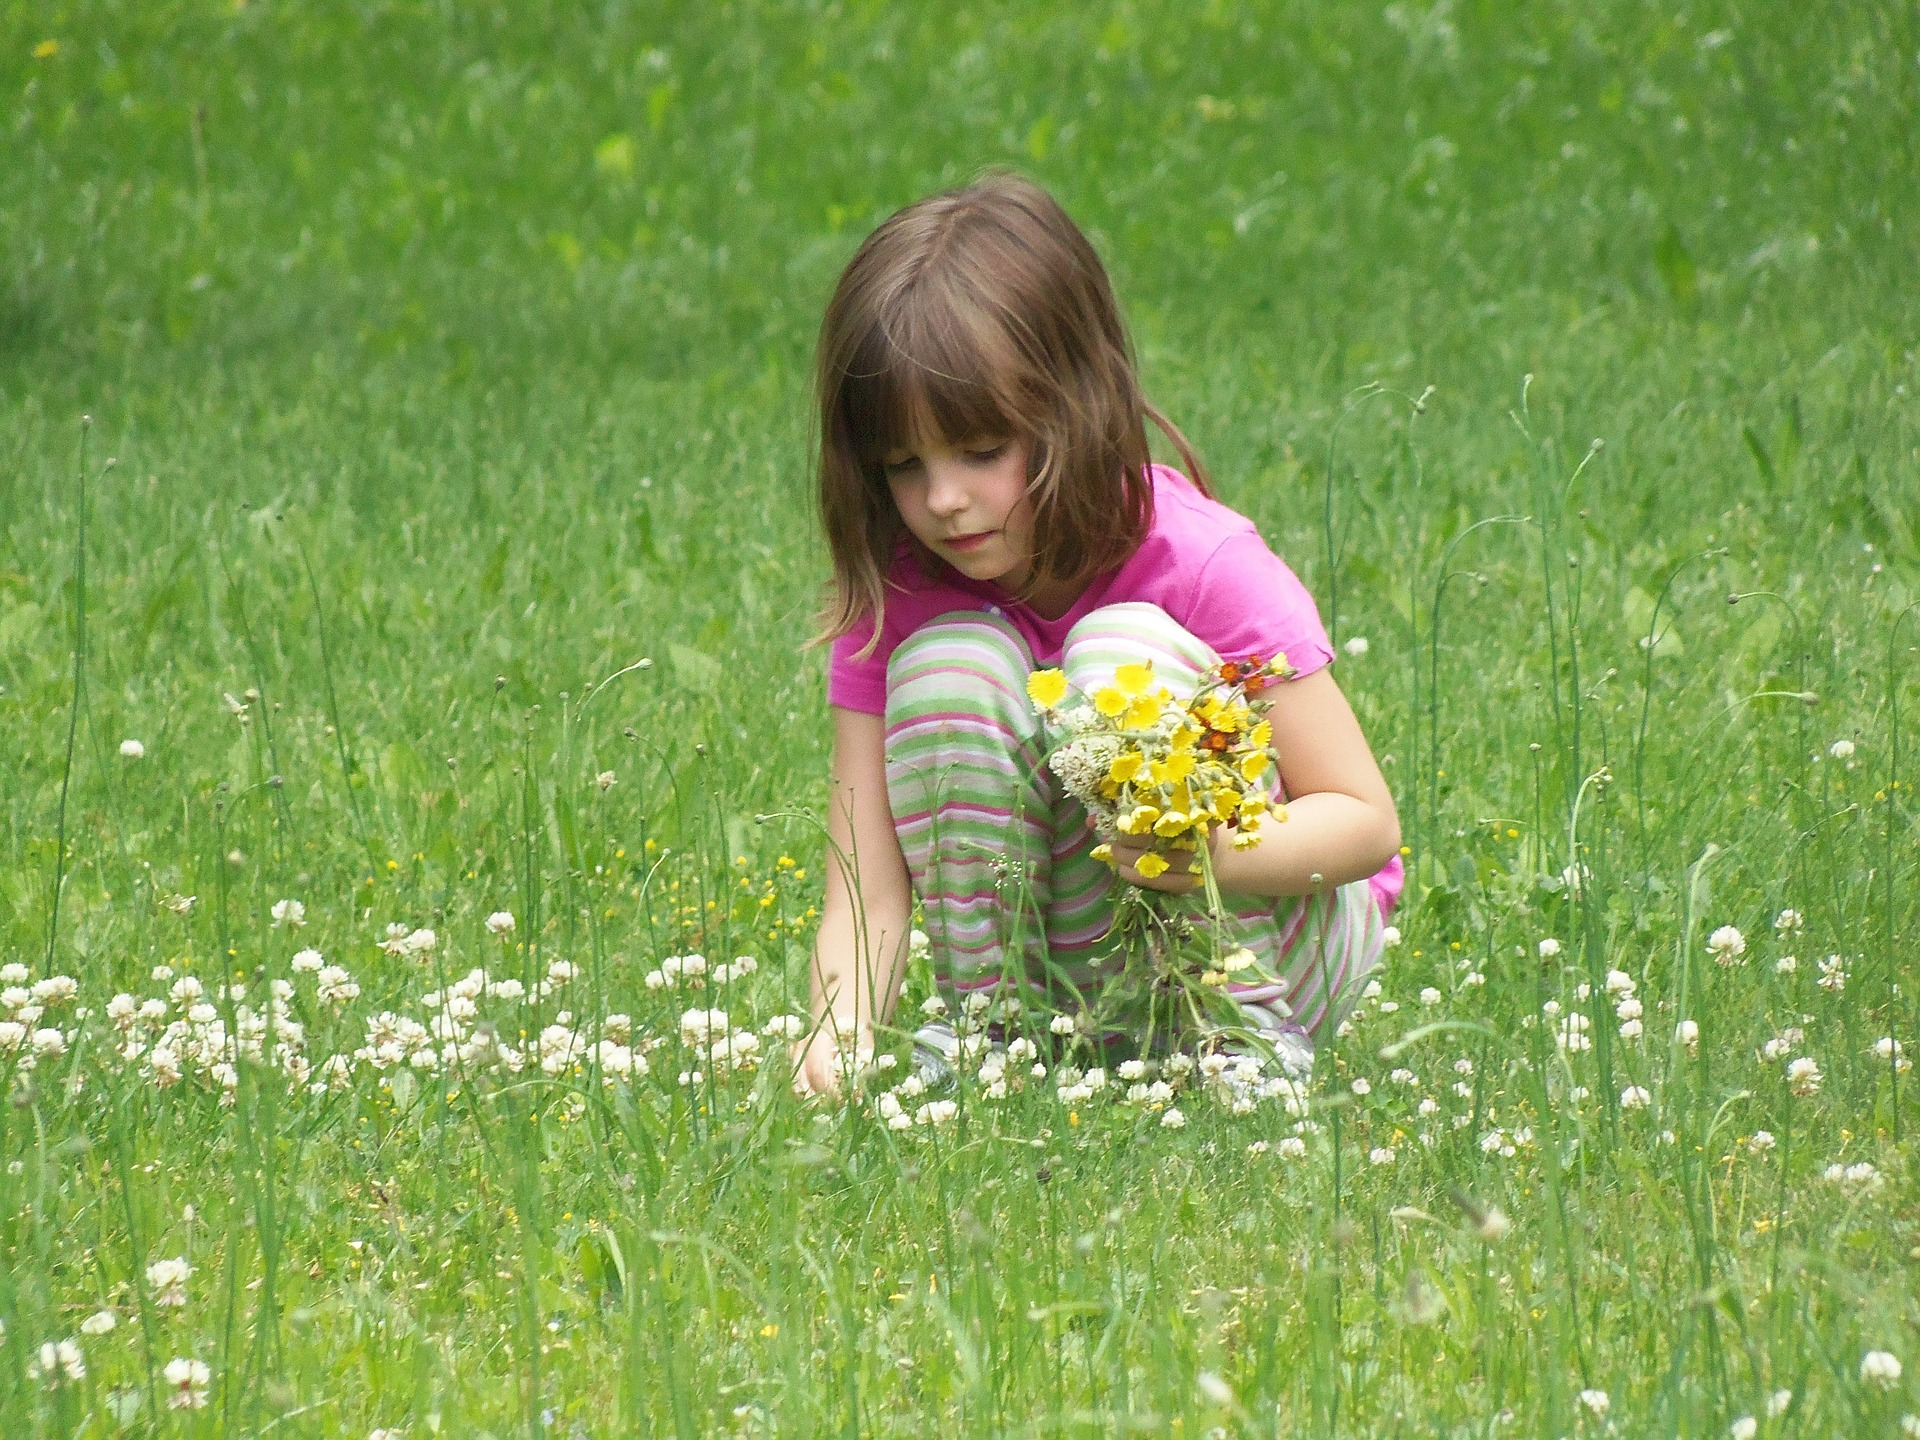 picking-flowers-391610_1920